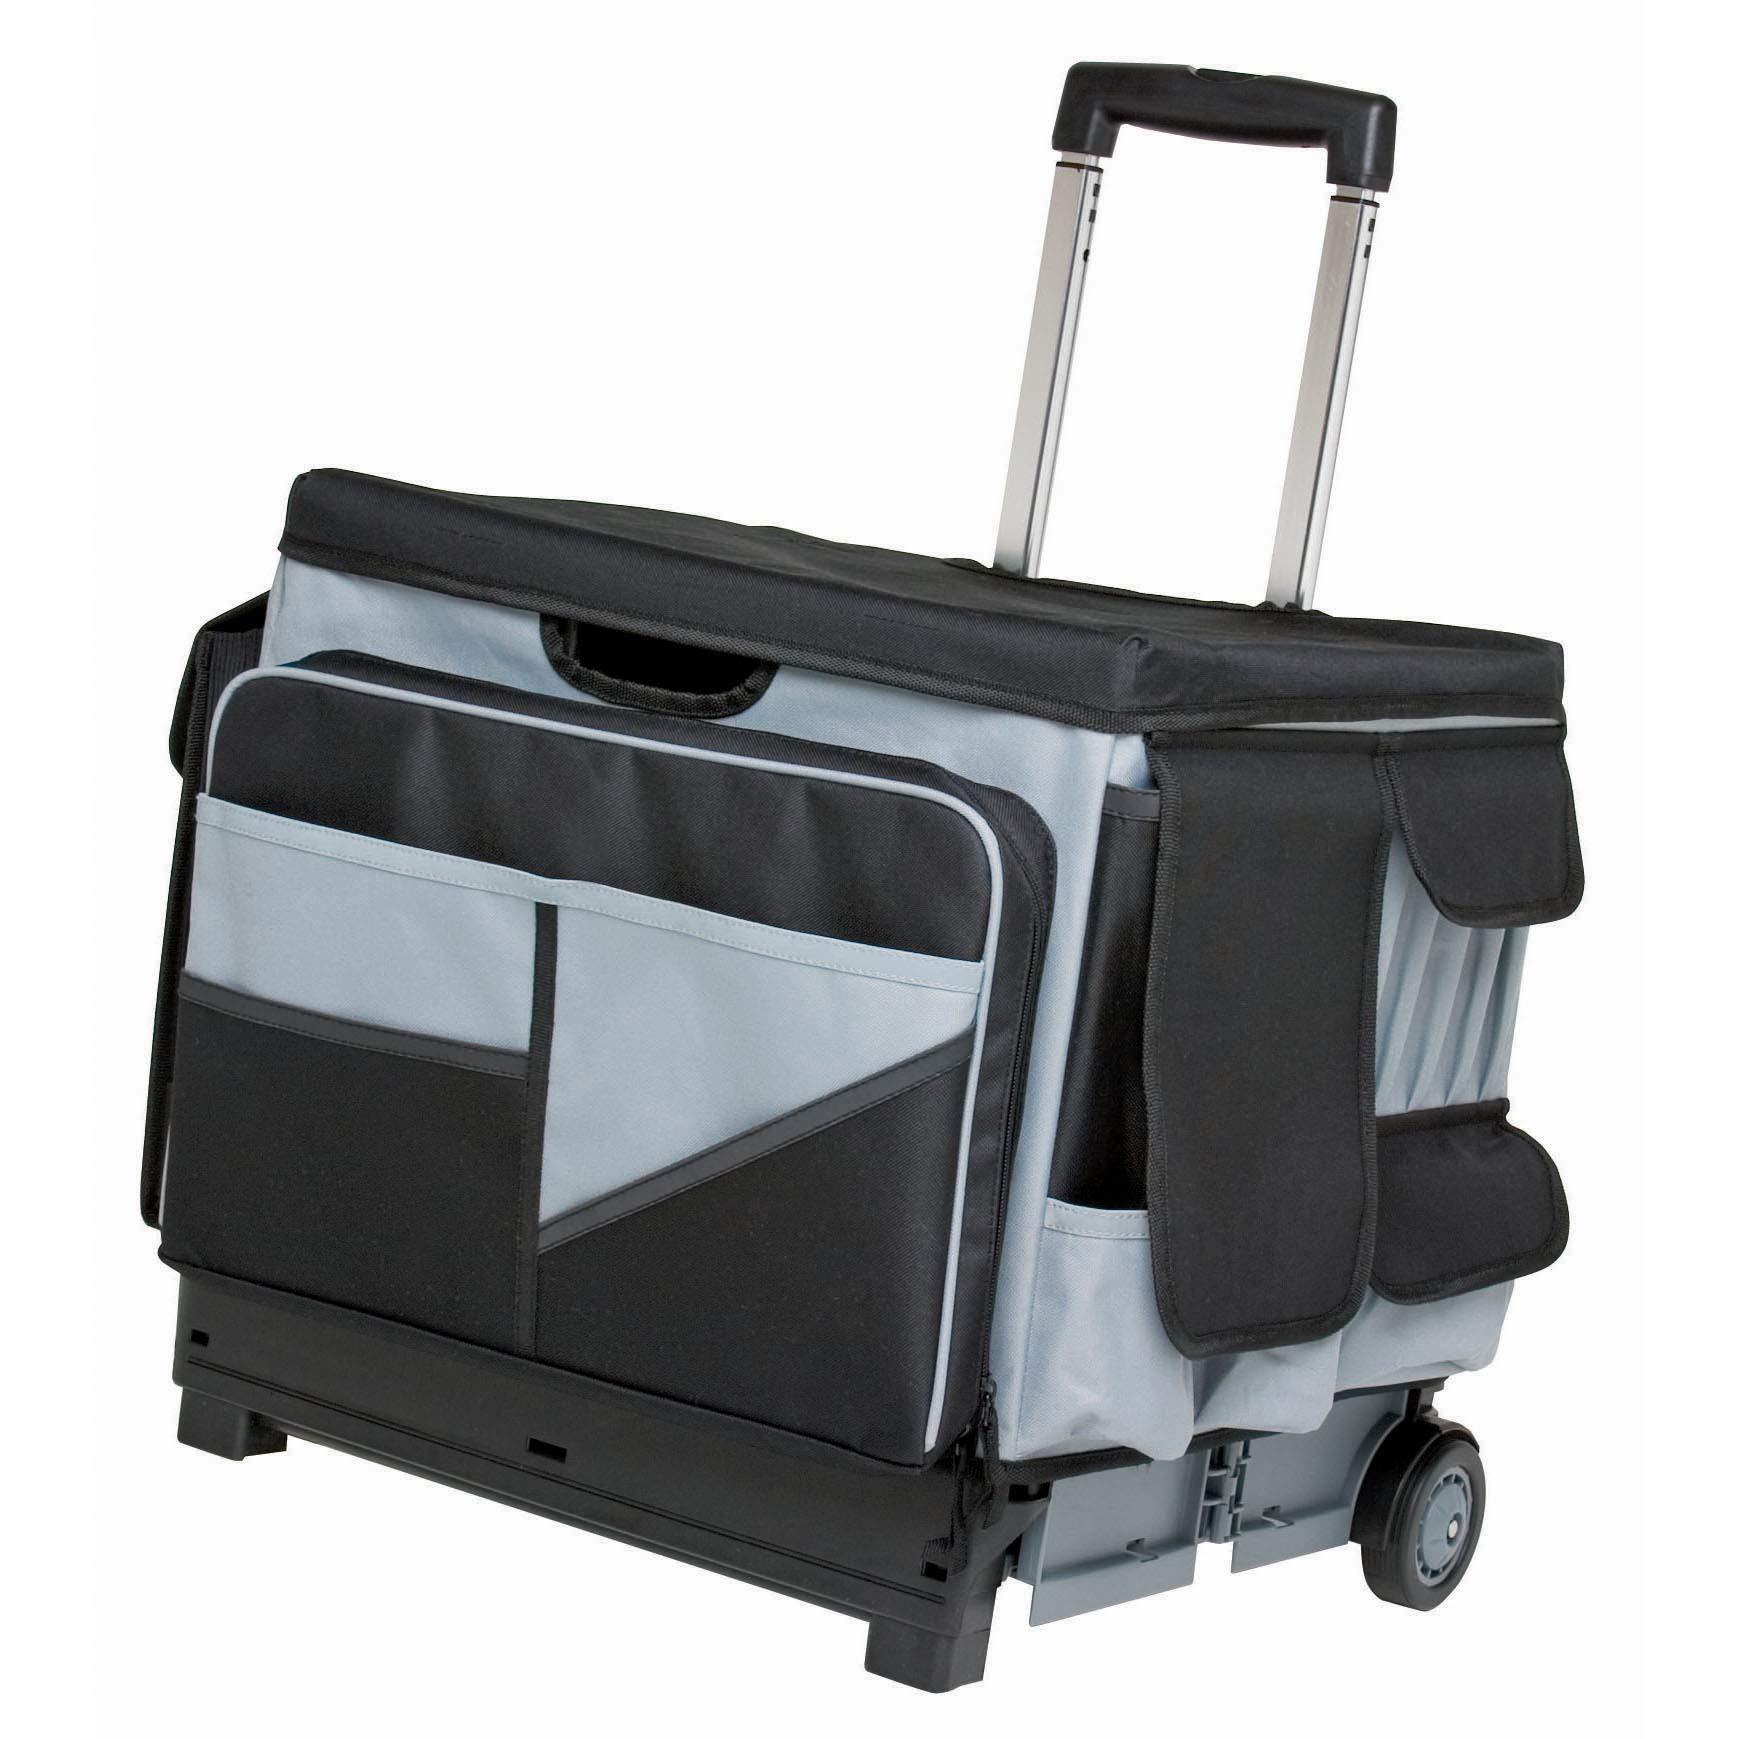 ECR4Kids MemoryStor Universal Rolling Cart and Organizer Bag Set, Black